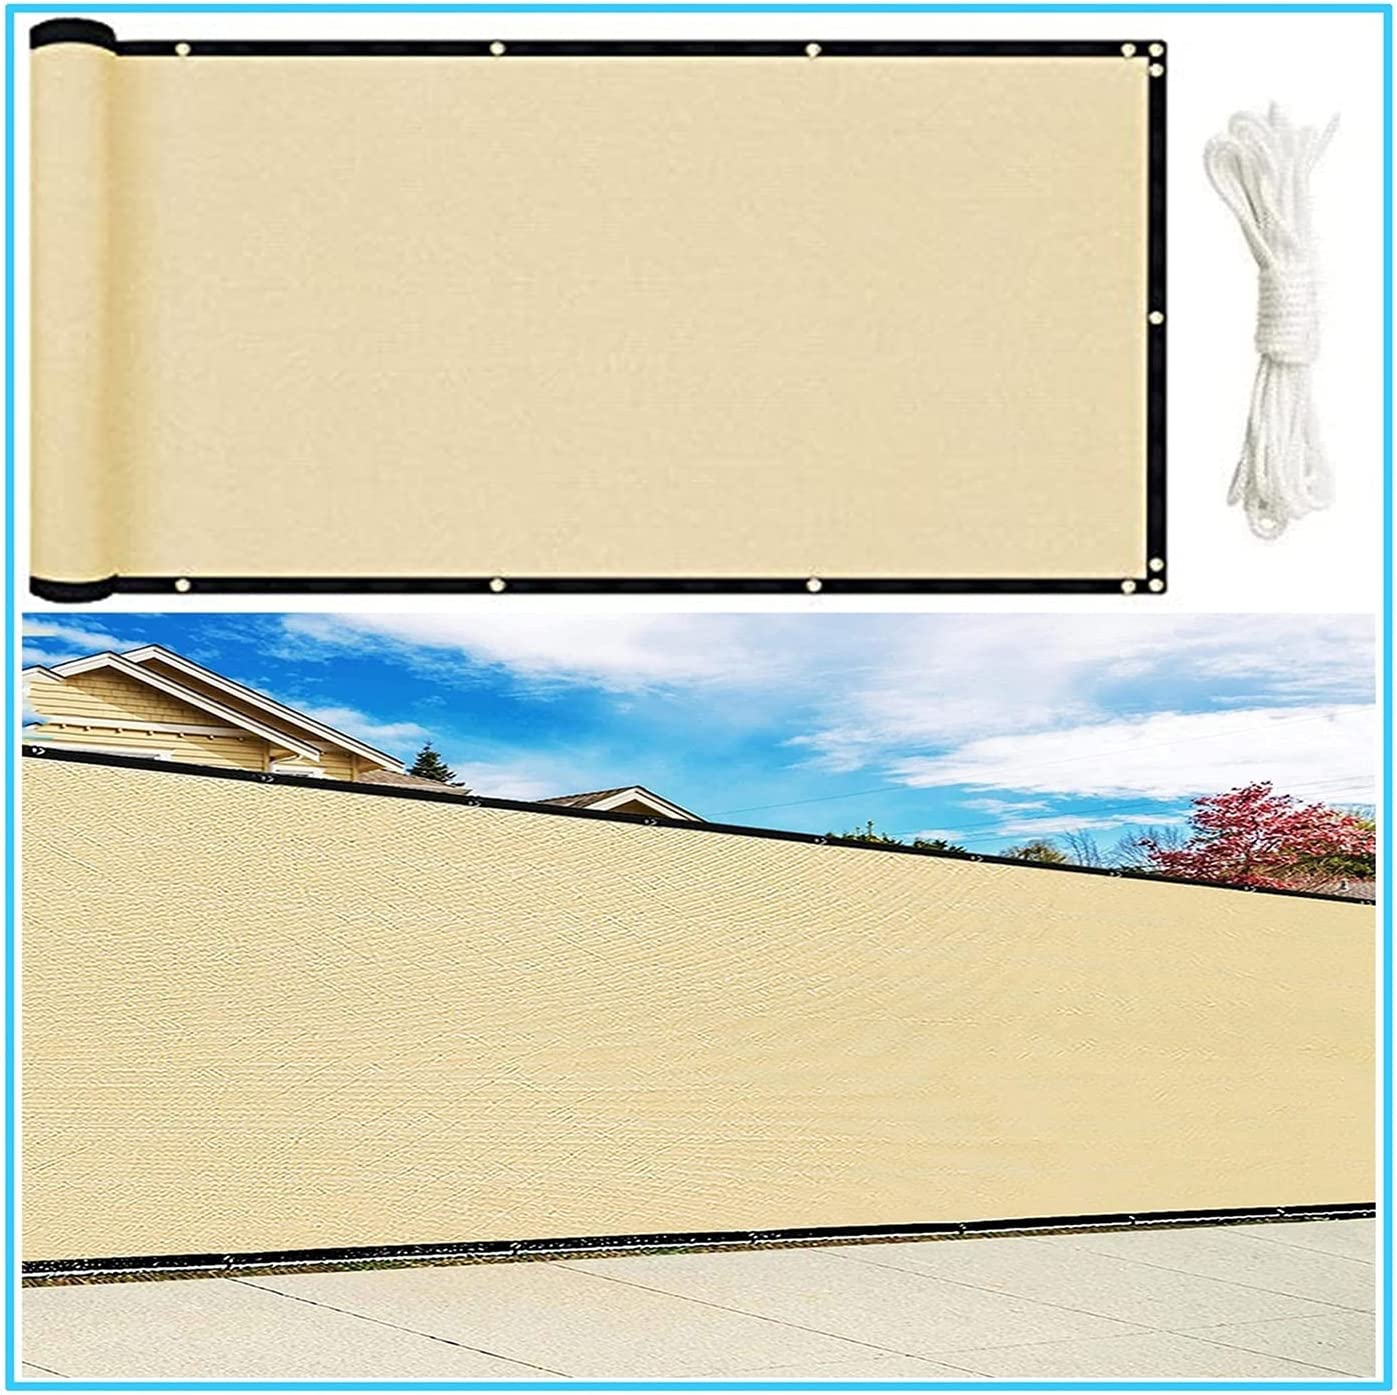 Shade Cloth Sunblock Shading Super Ranking TOP17 beauty product restock quality top Net Ventilated Shades Privacy Shie